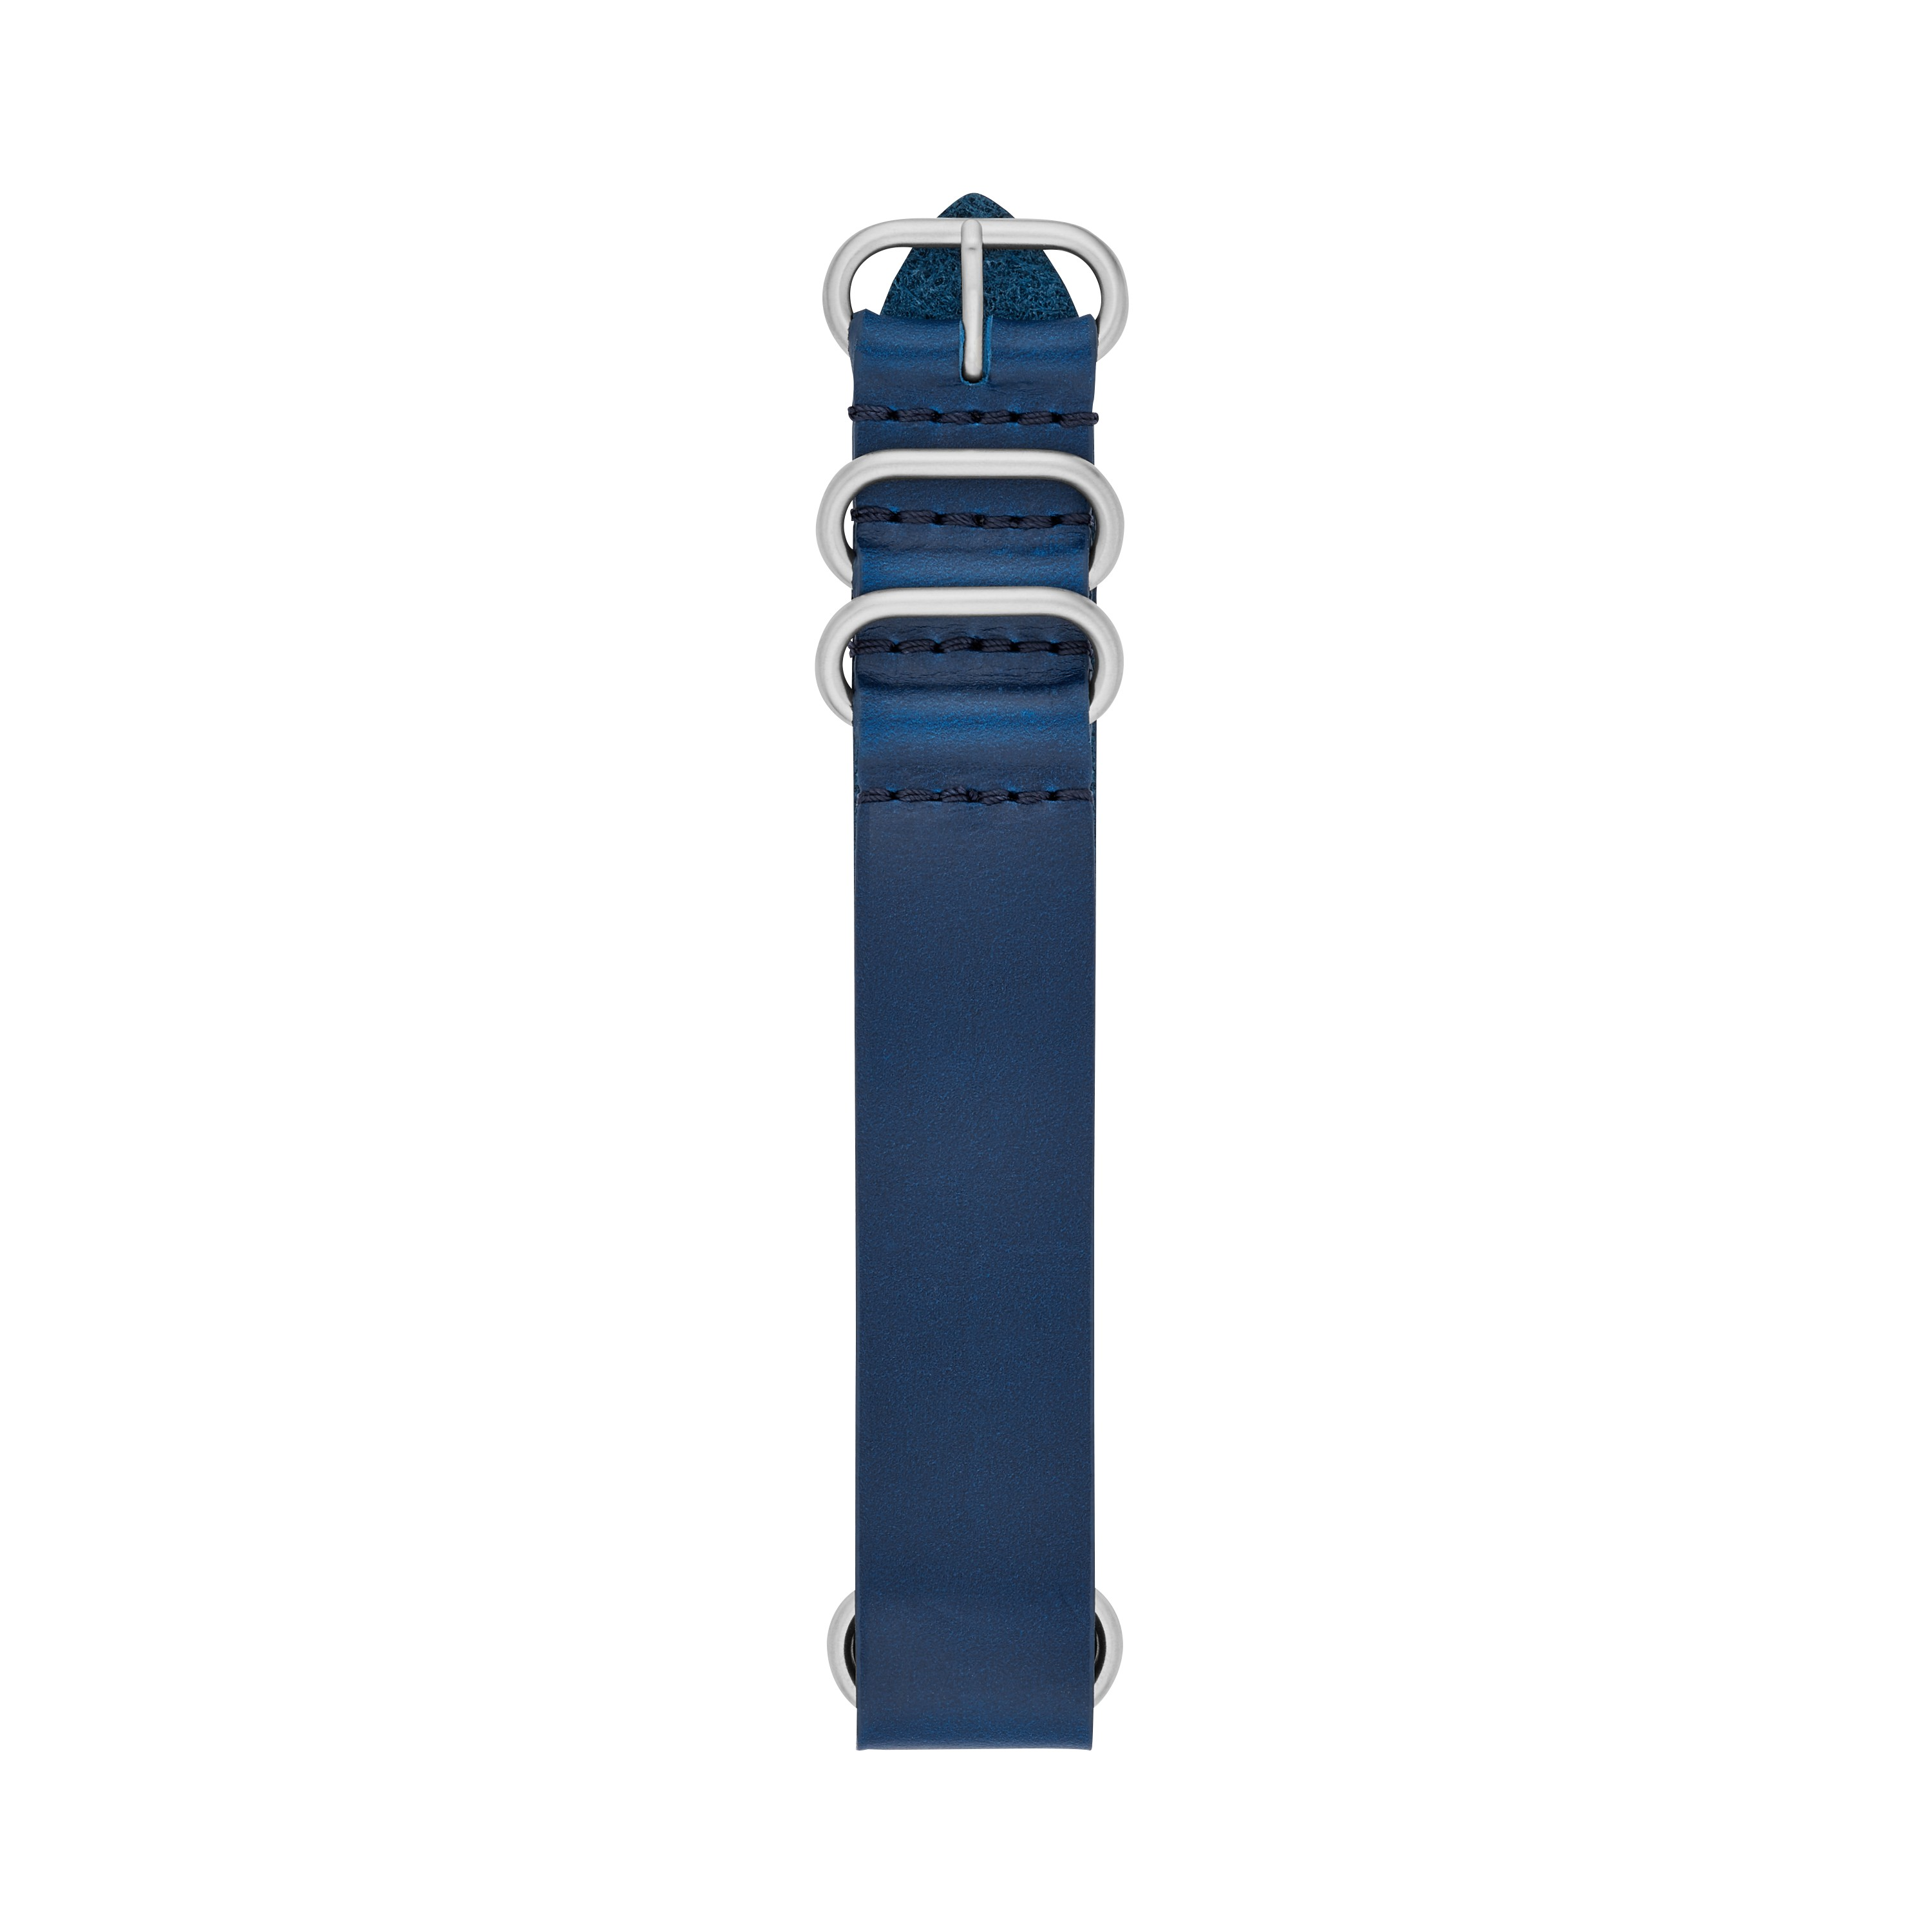 Fossil 22Mm Blue Leather Watch Strap S221378